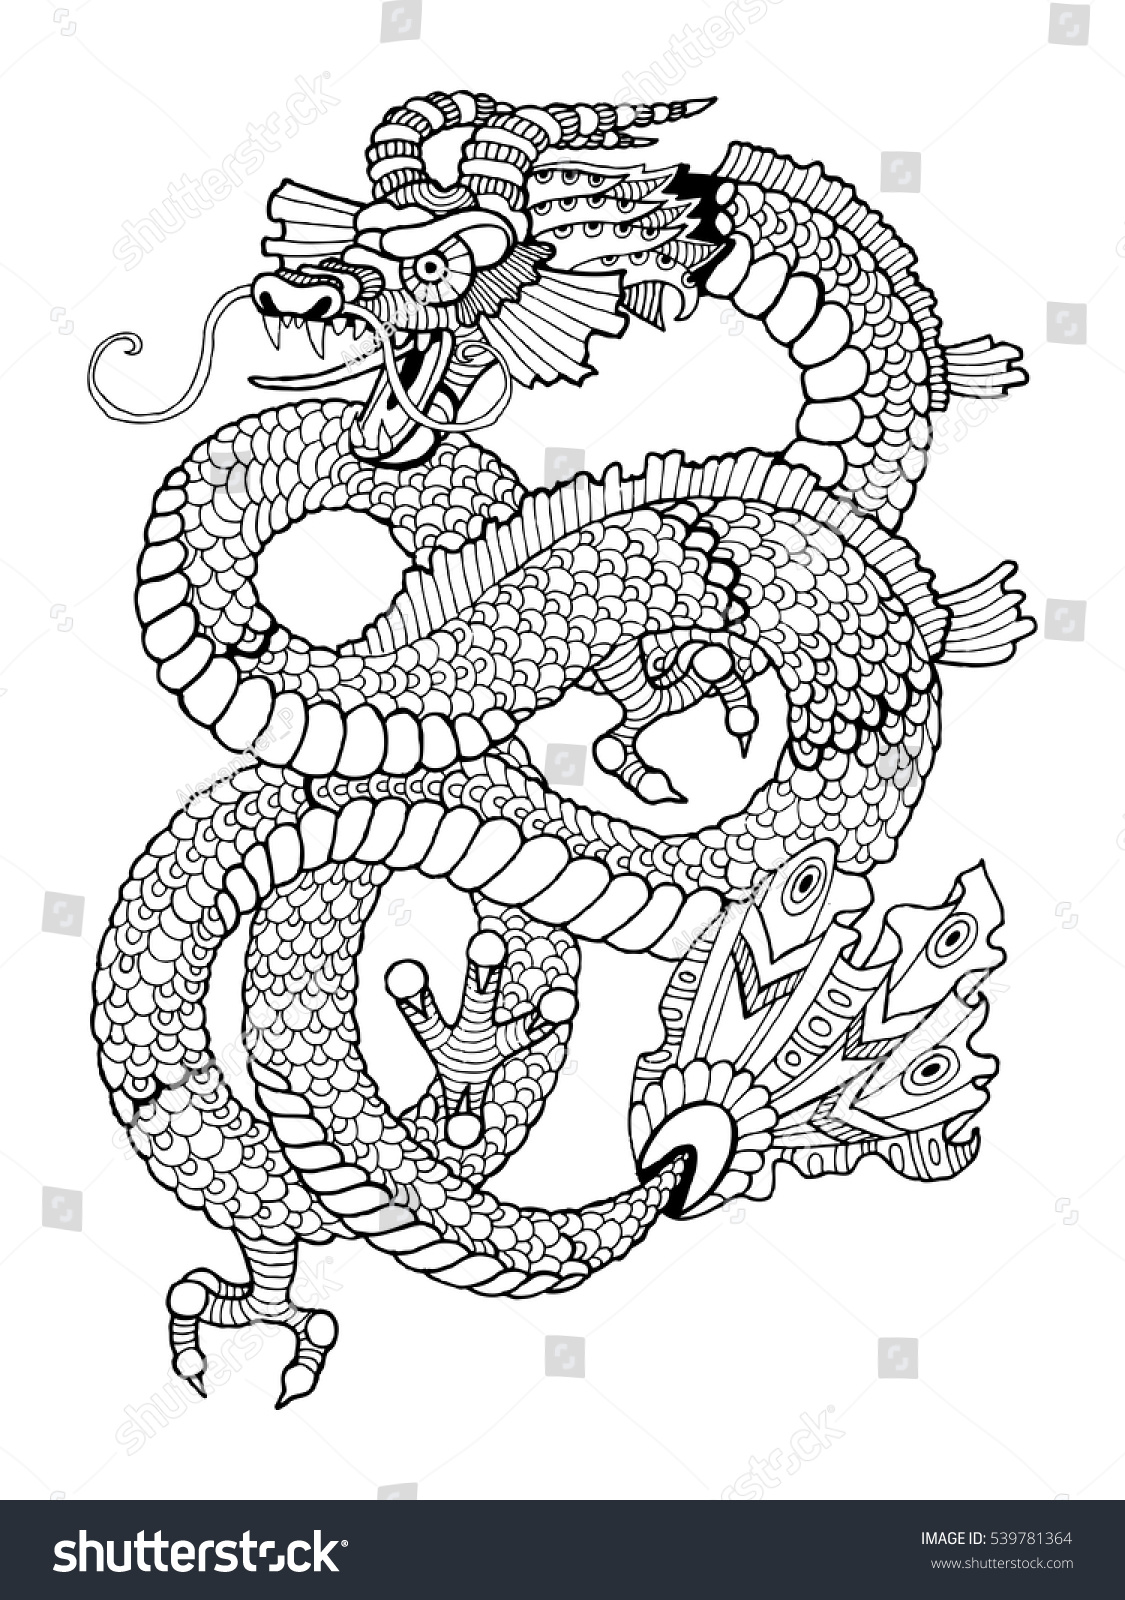 Dragon Coloring Book For Adults Vector Illustration Anti Stress Adult Tattoo